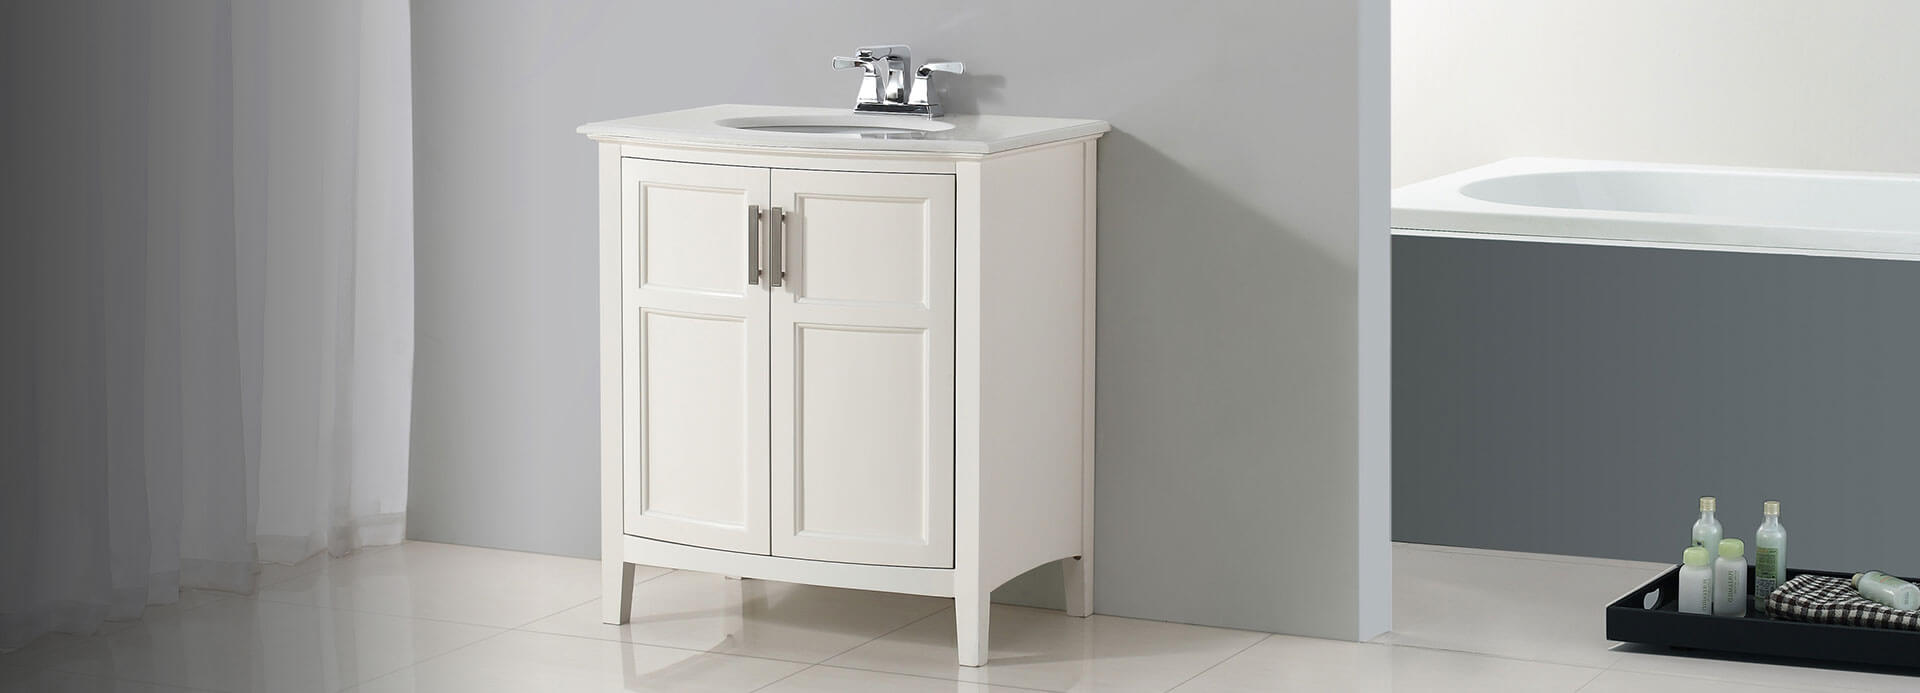 Top Rated Bathroom Cabinets. Bathroom Furniture   Amazon com